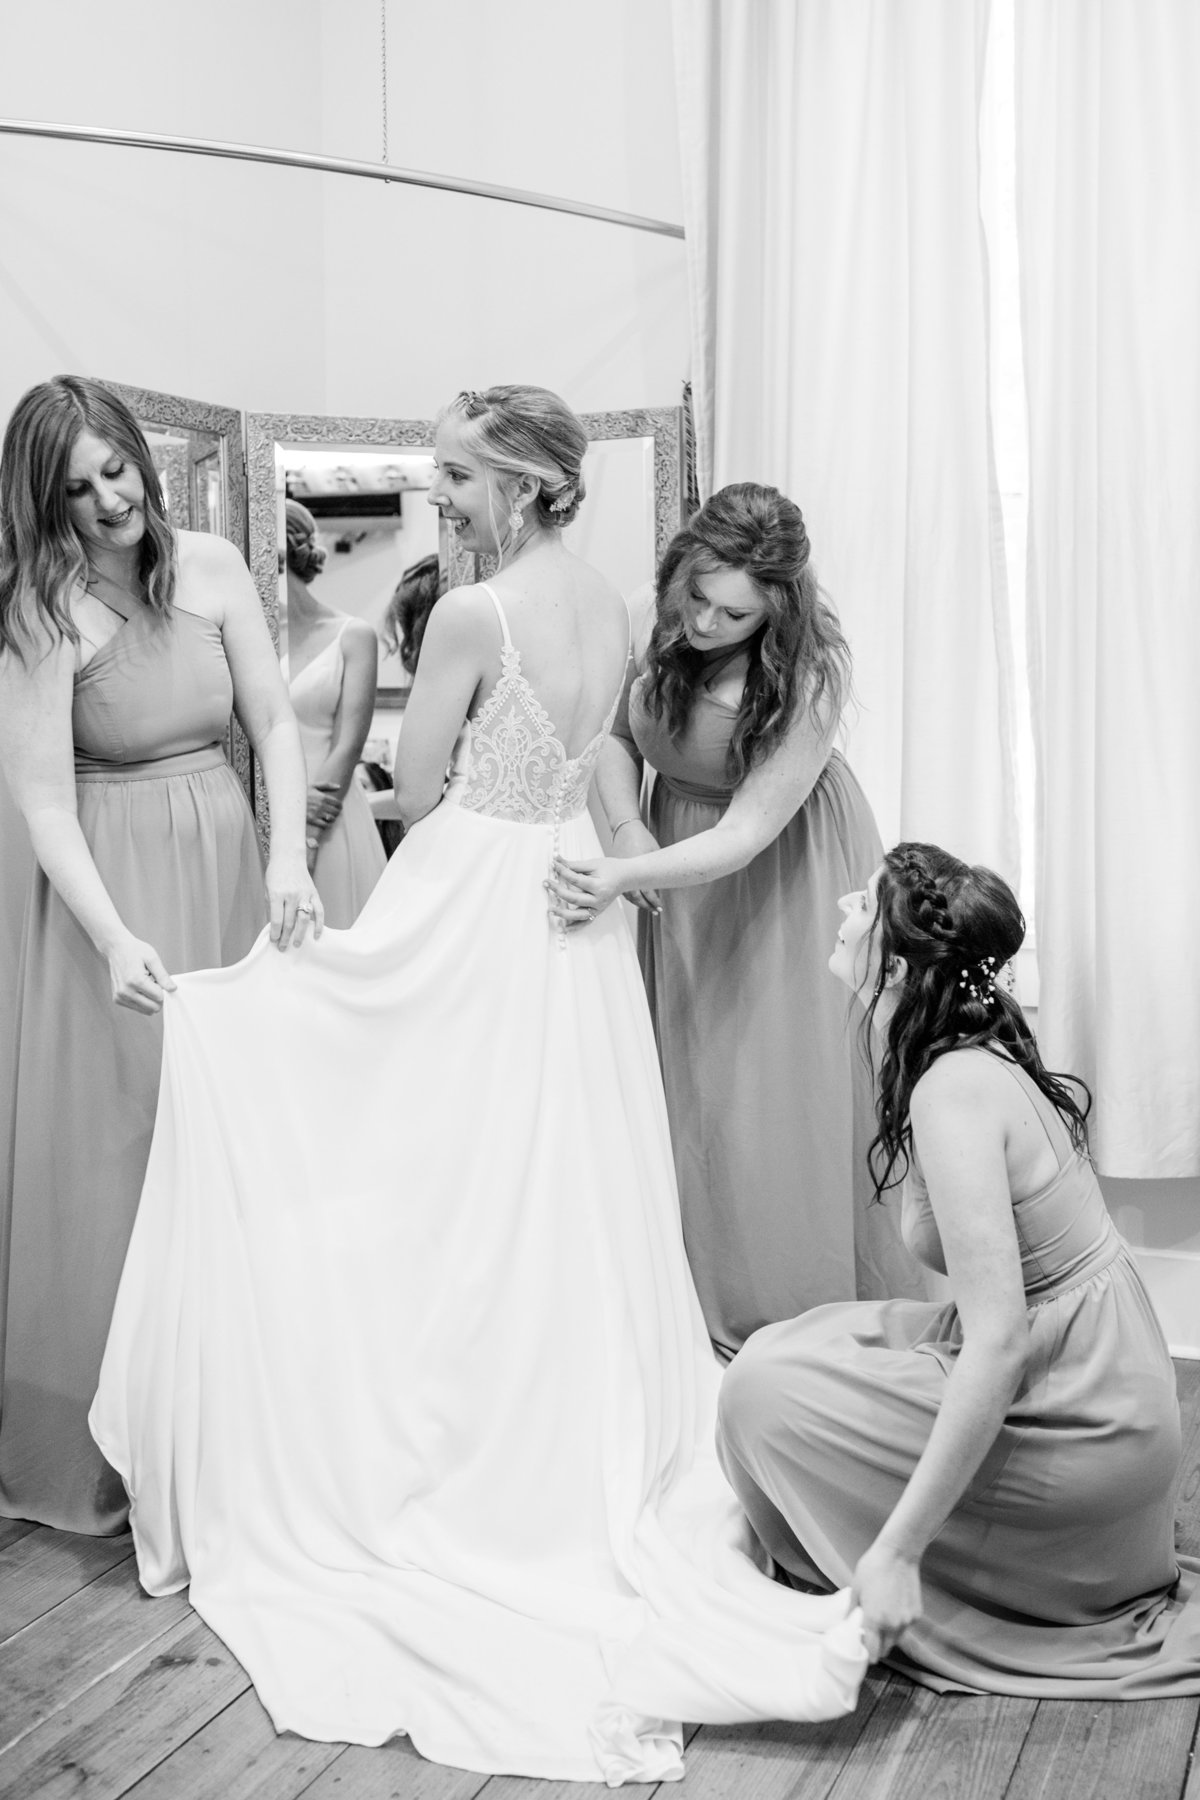 bride getting into dress with her  bridesmaids helping